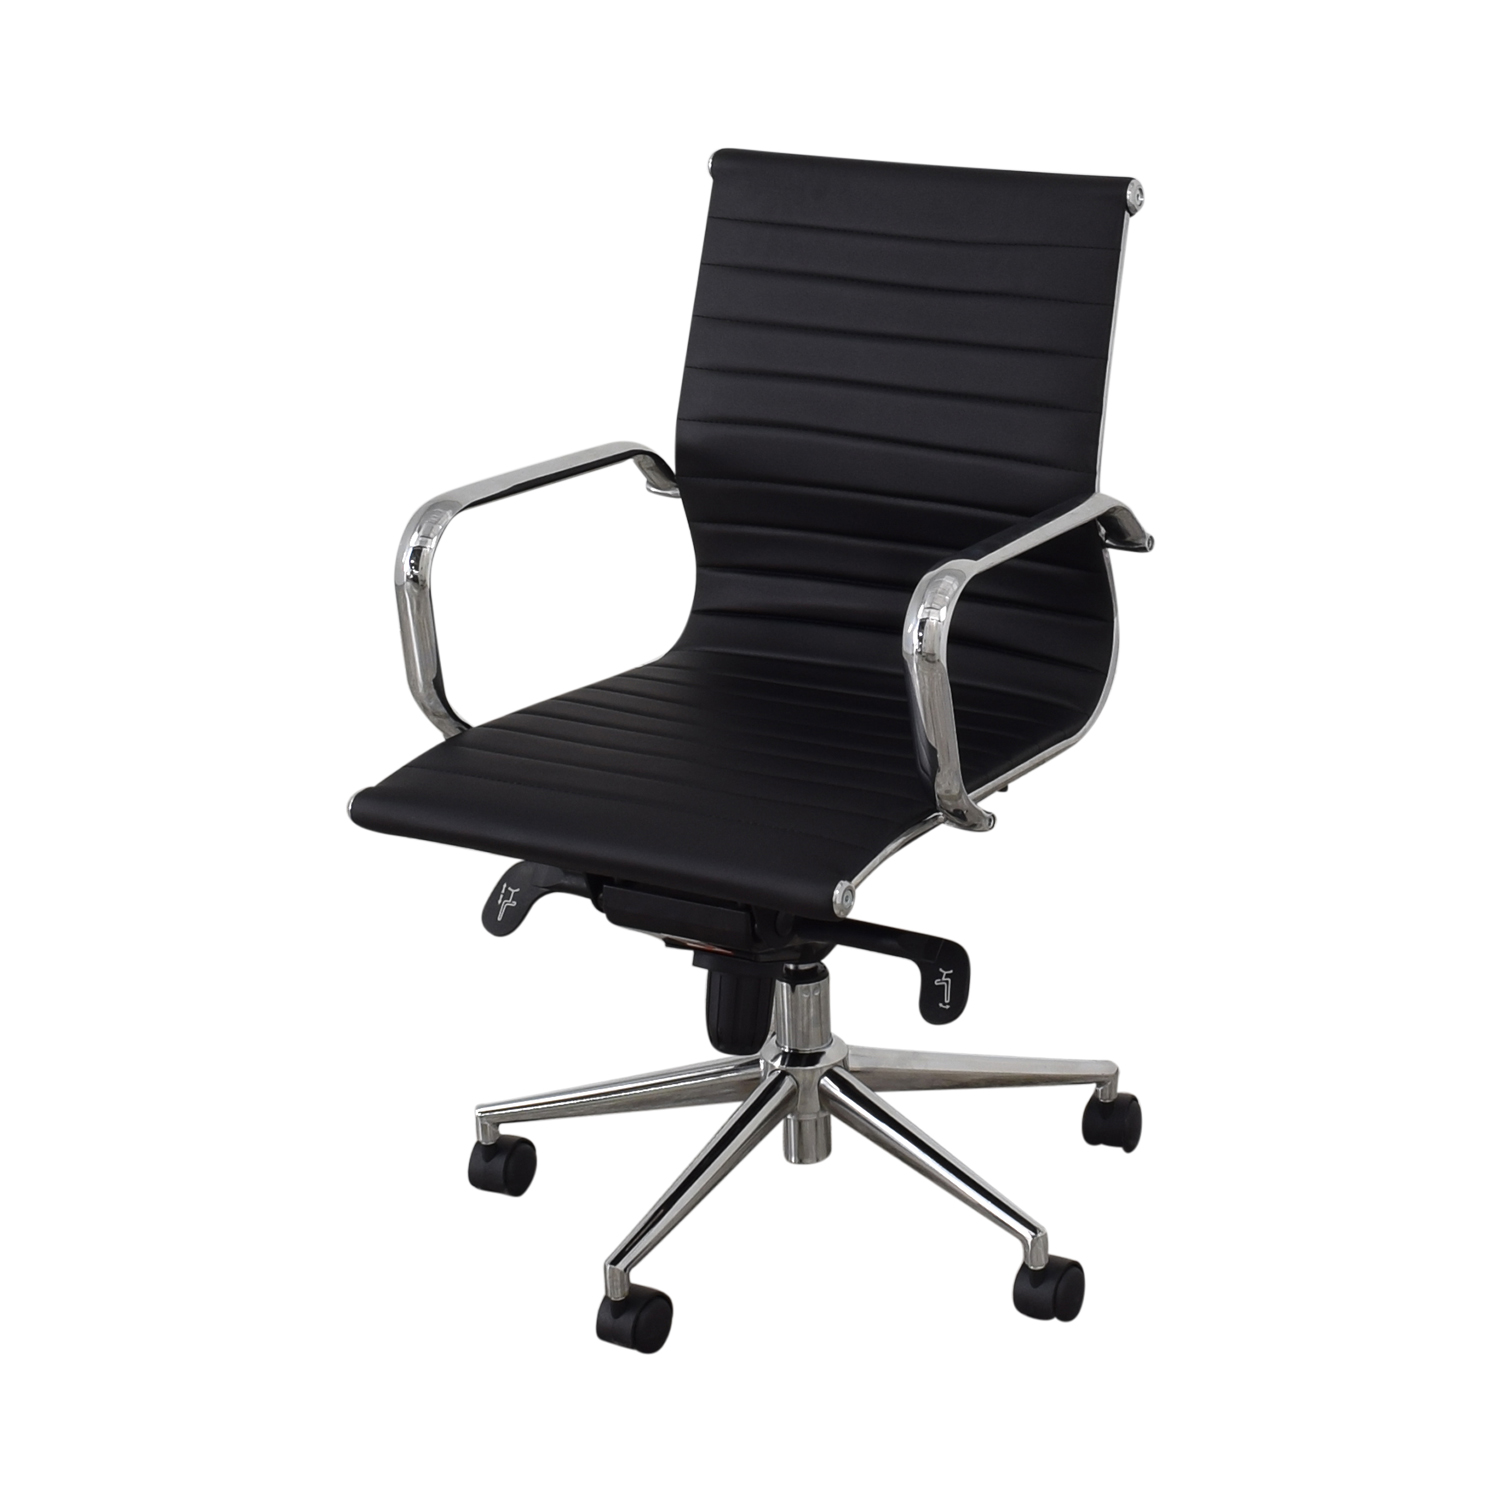 Wayfair Perlis Ergonomic Conference Chair / Home Office Chairs